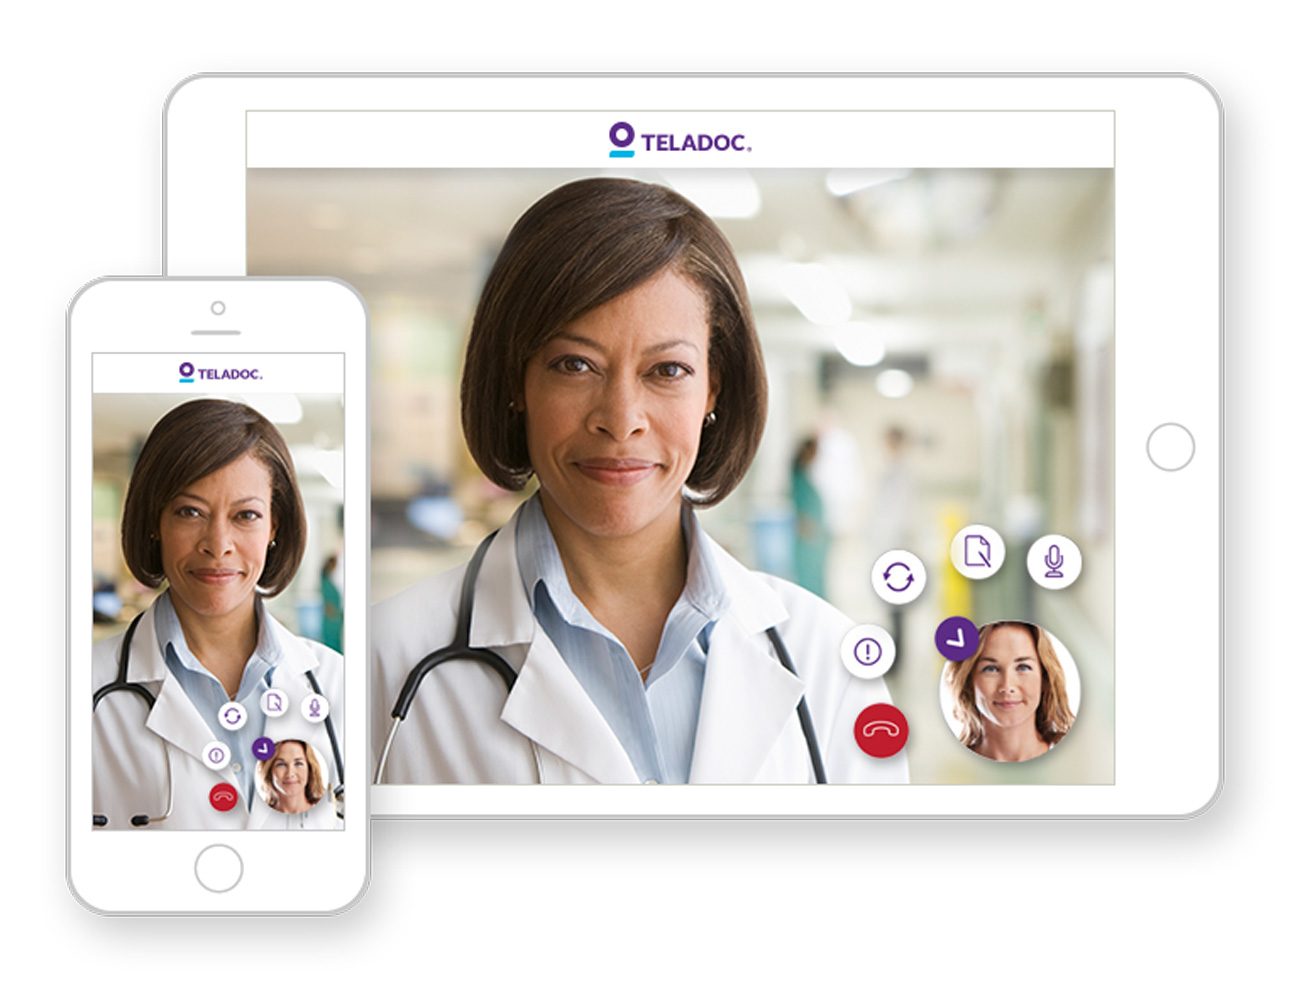 What's this Teladoc I'm hearing about? - Nicholson Group Inc.